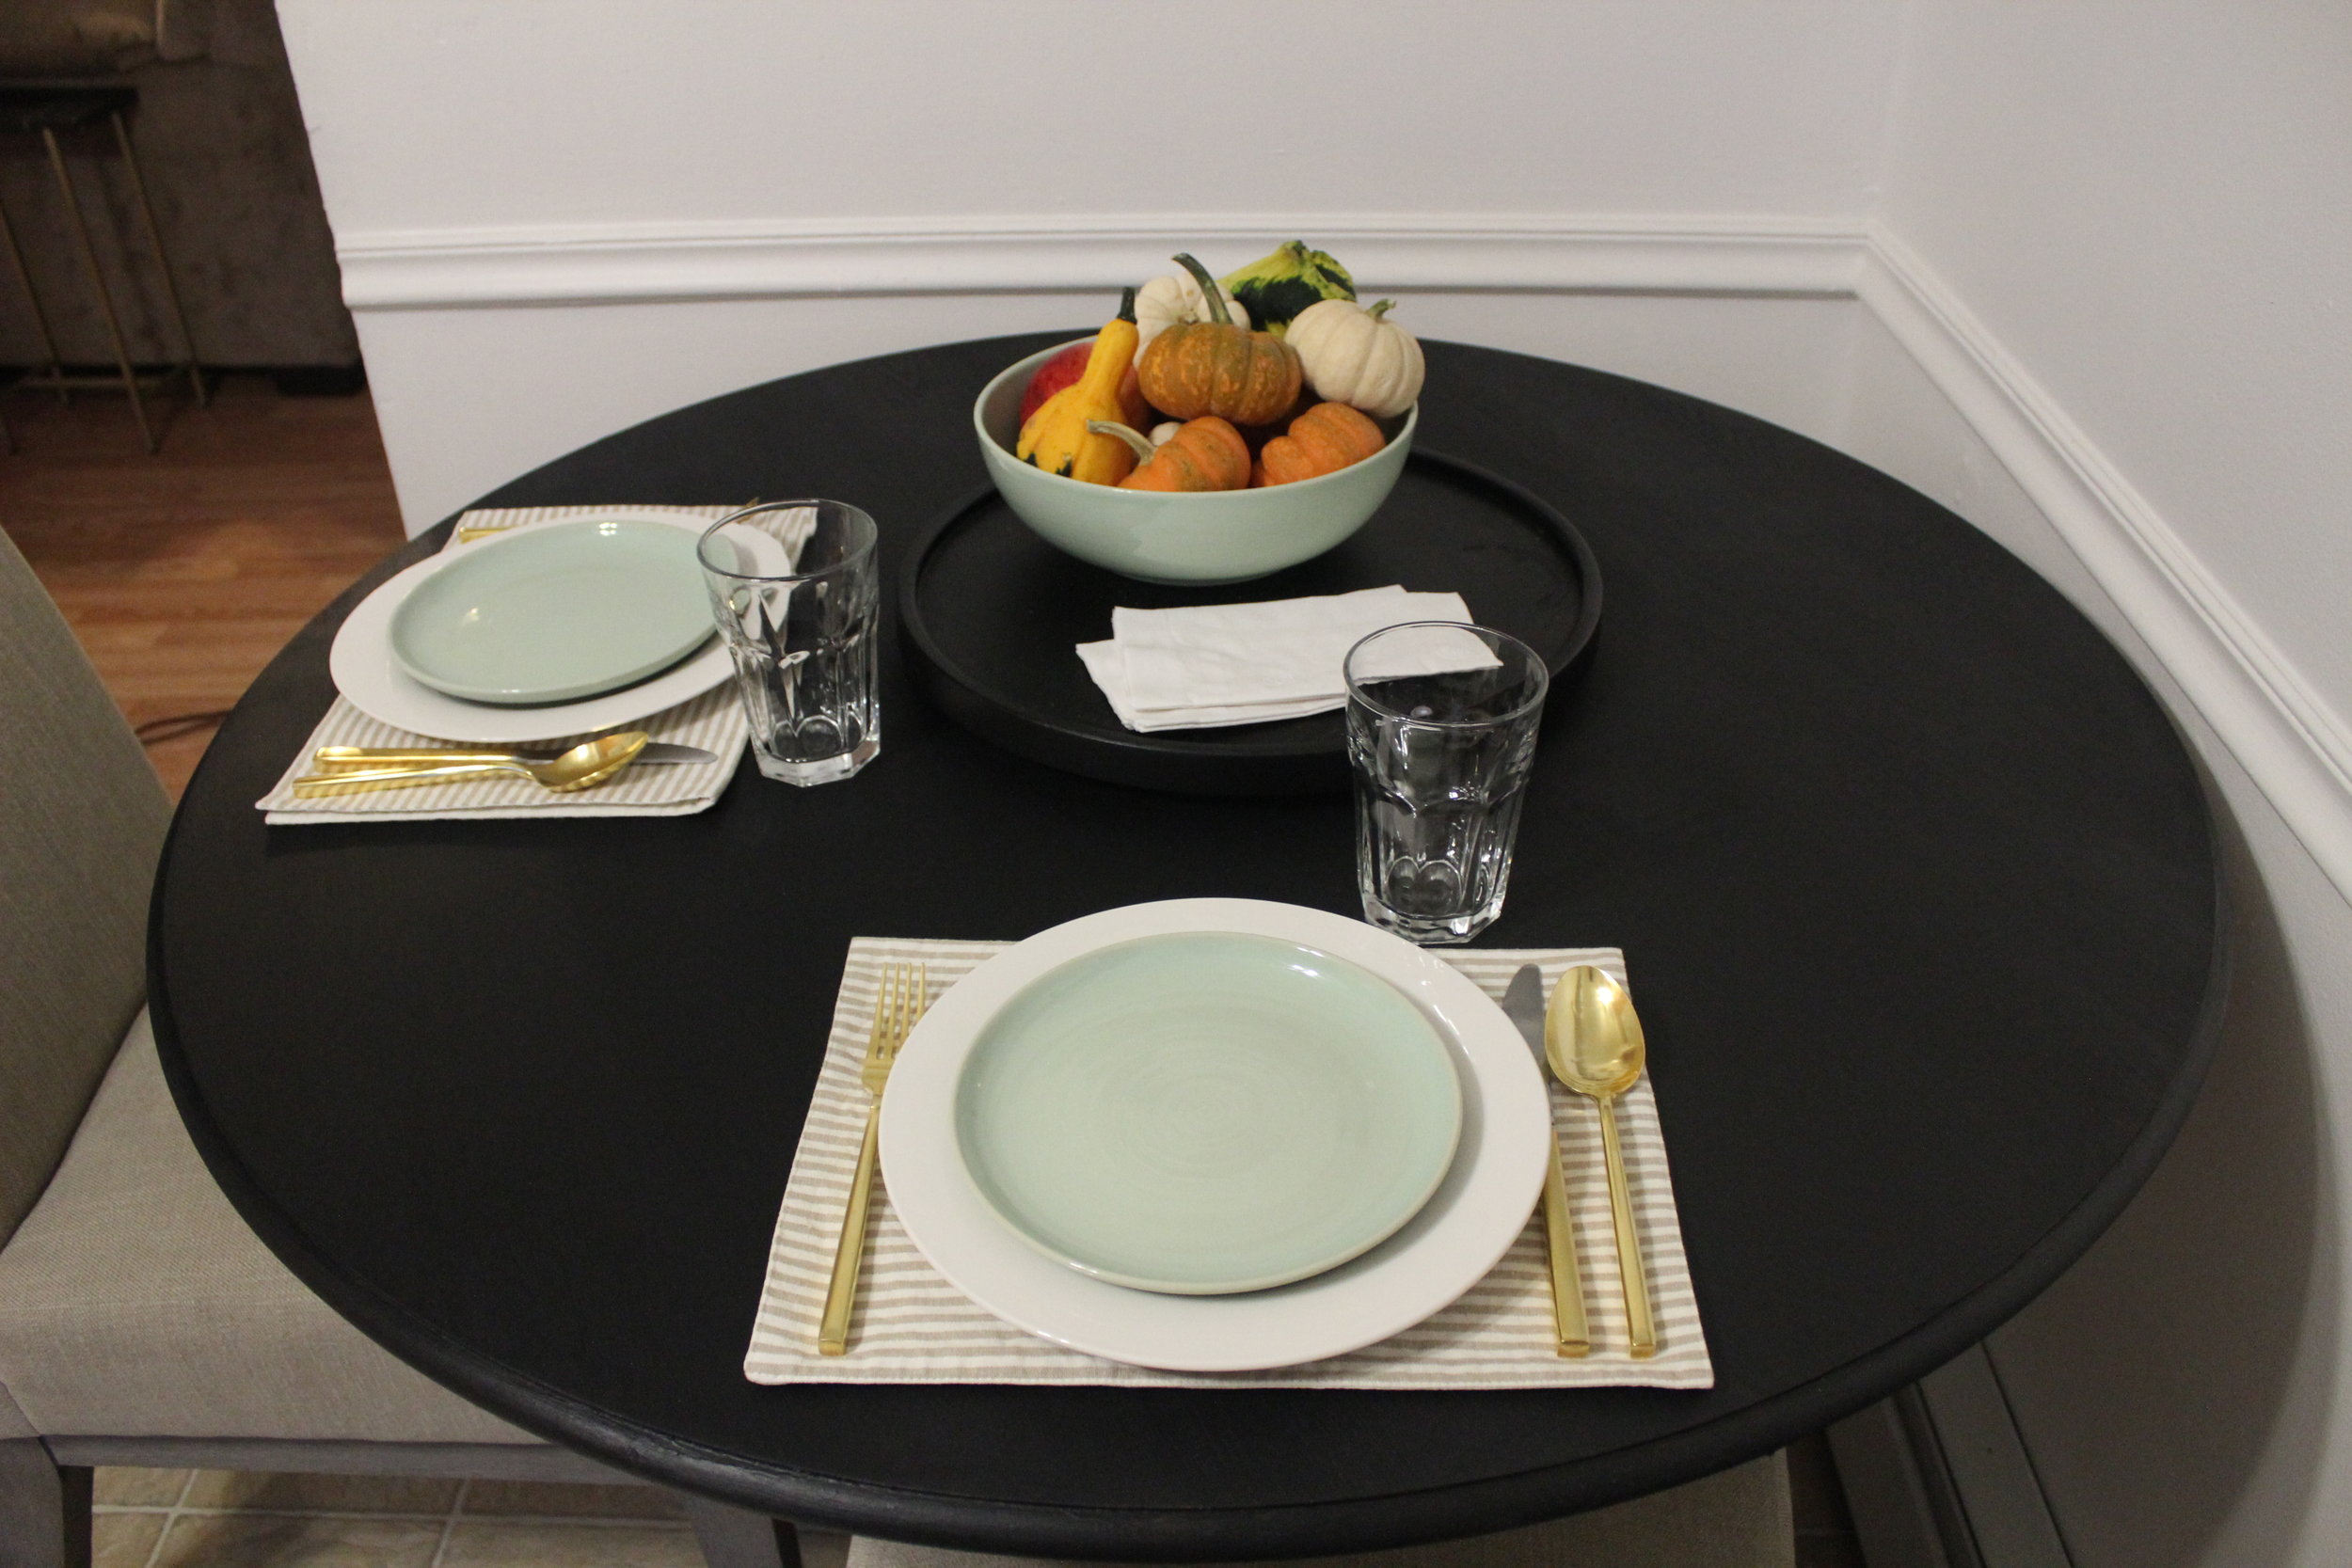 Set with dishes